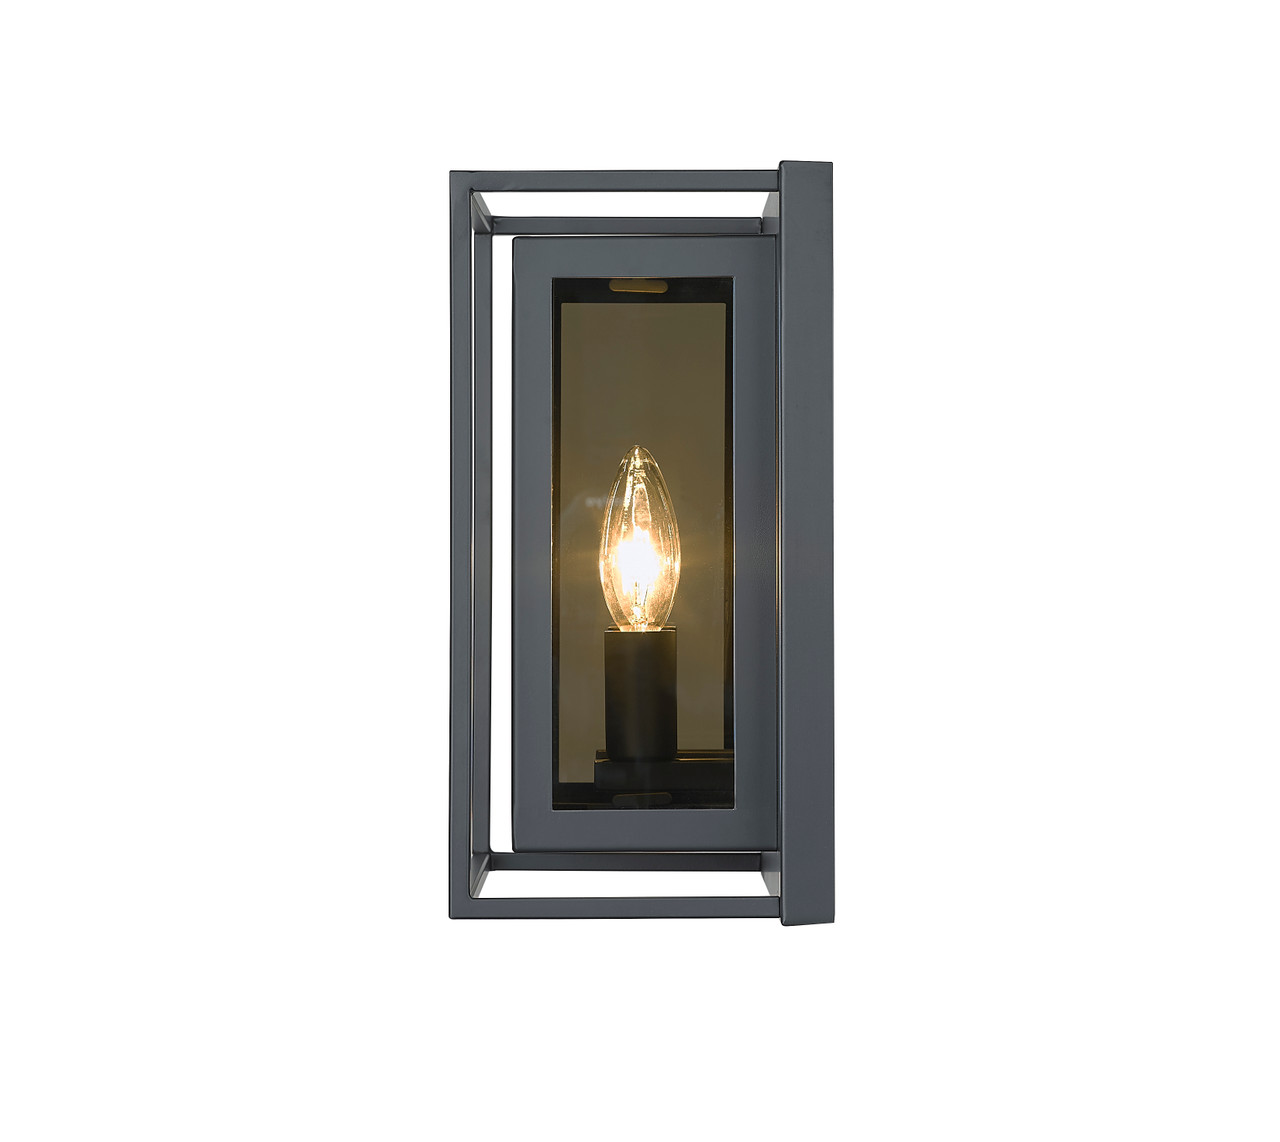 Infinity 2 Light Wall Sconce